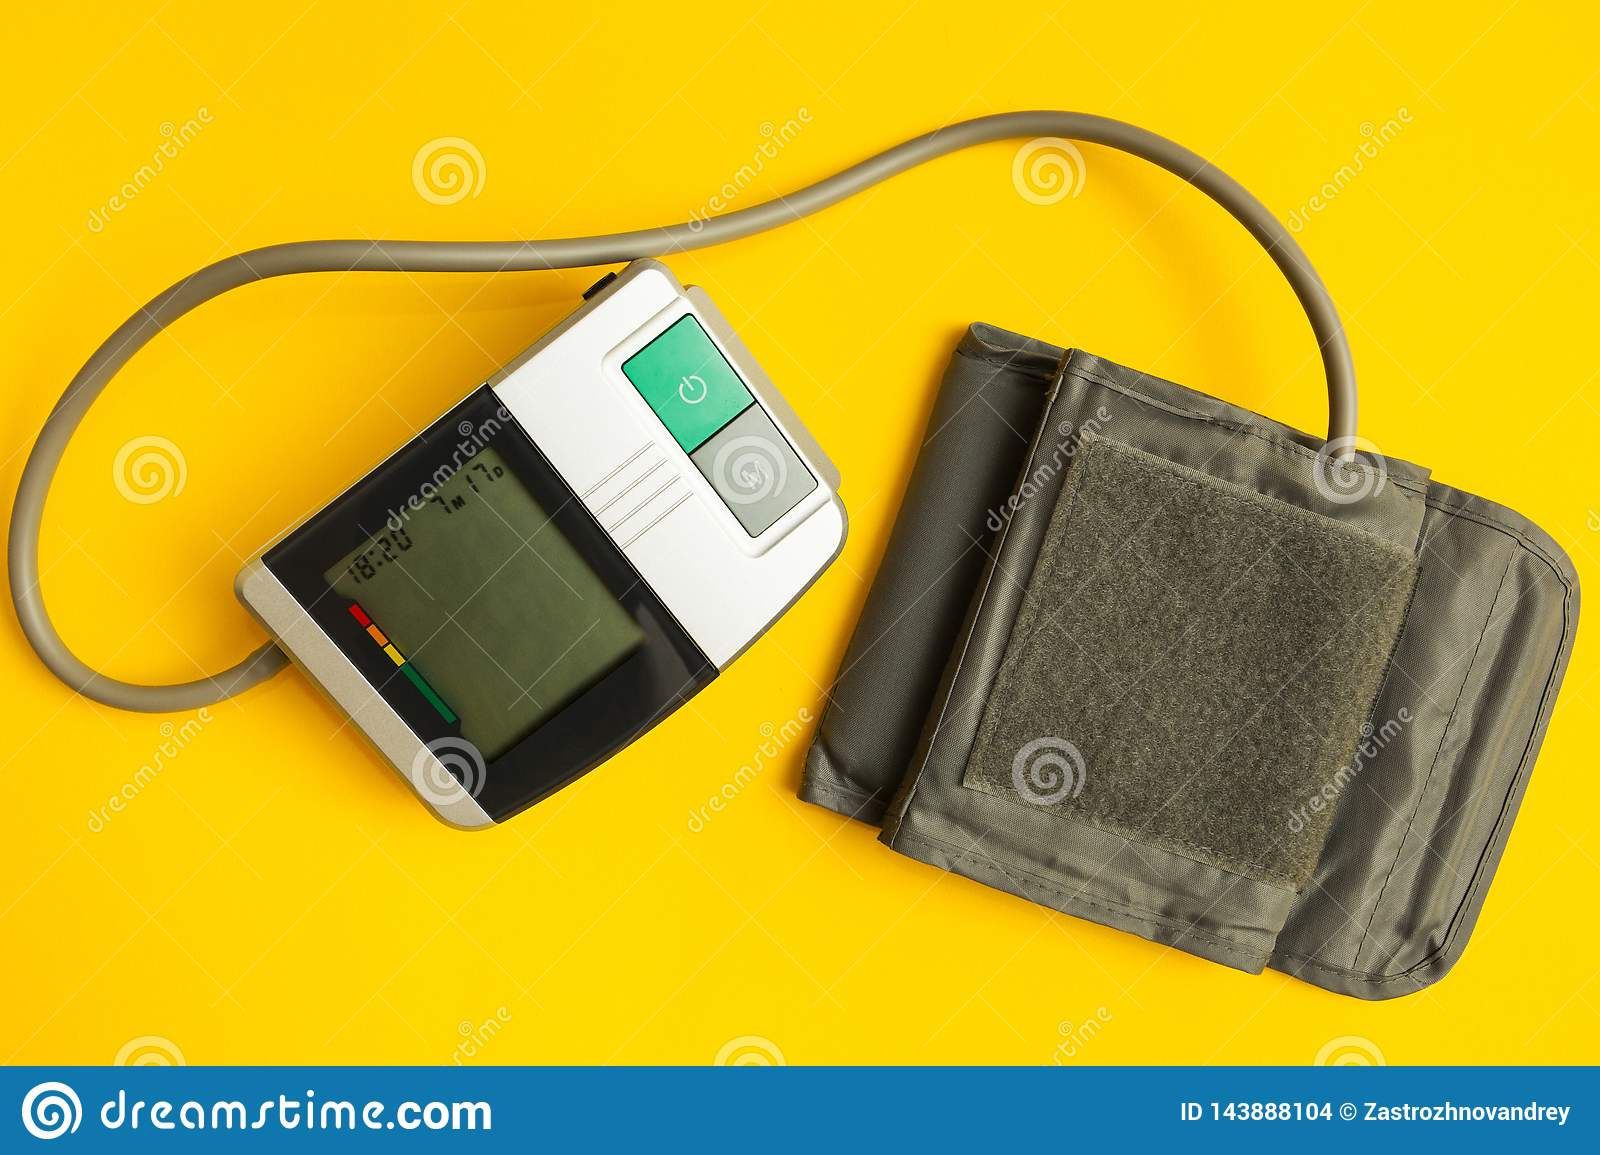 Digital instrument for measuring blood pressure on a yellow background